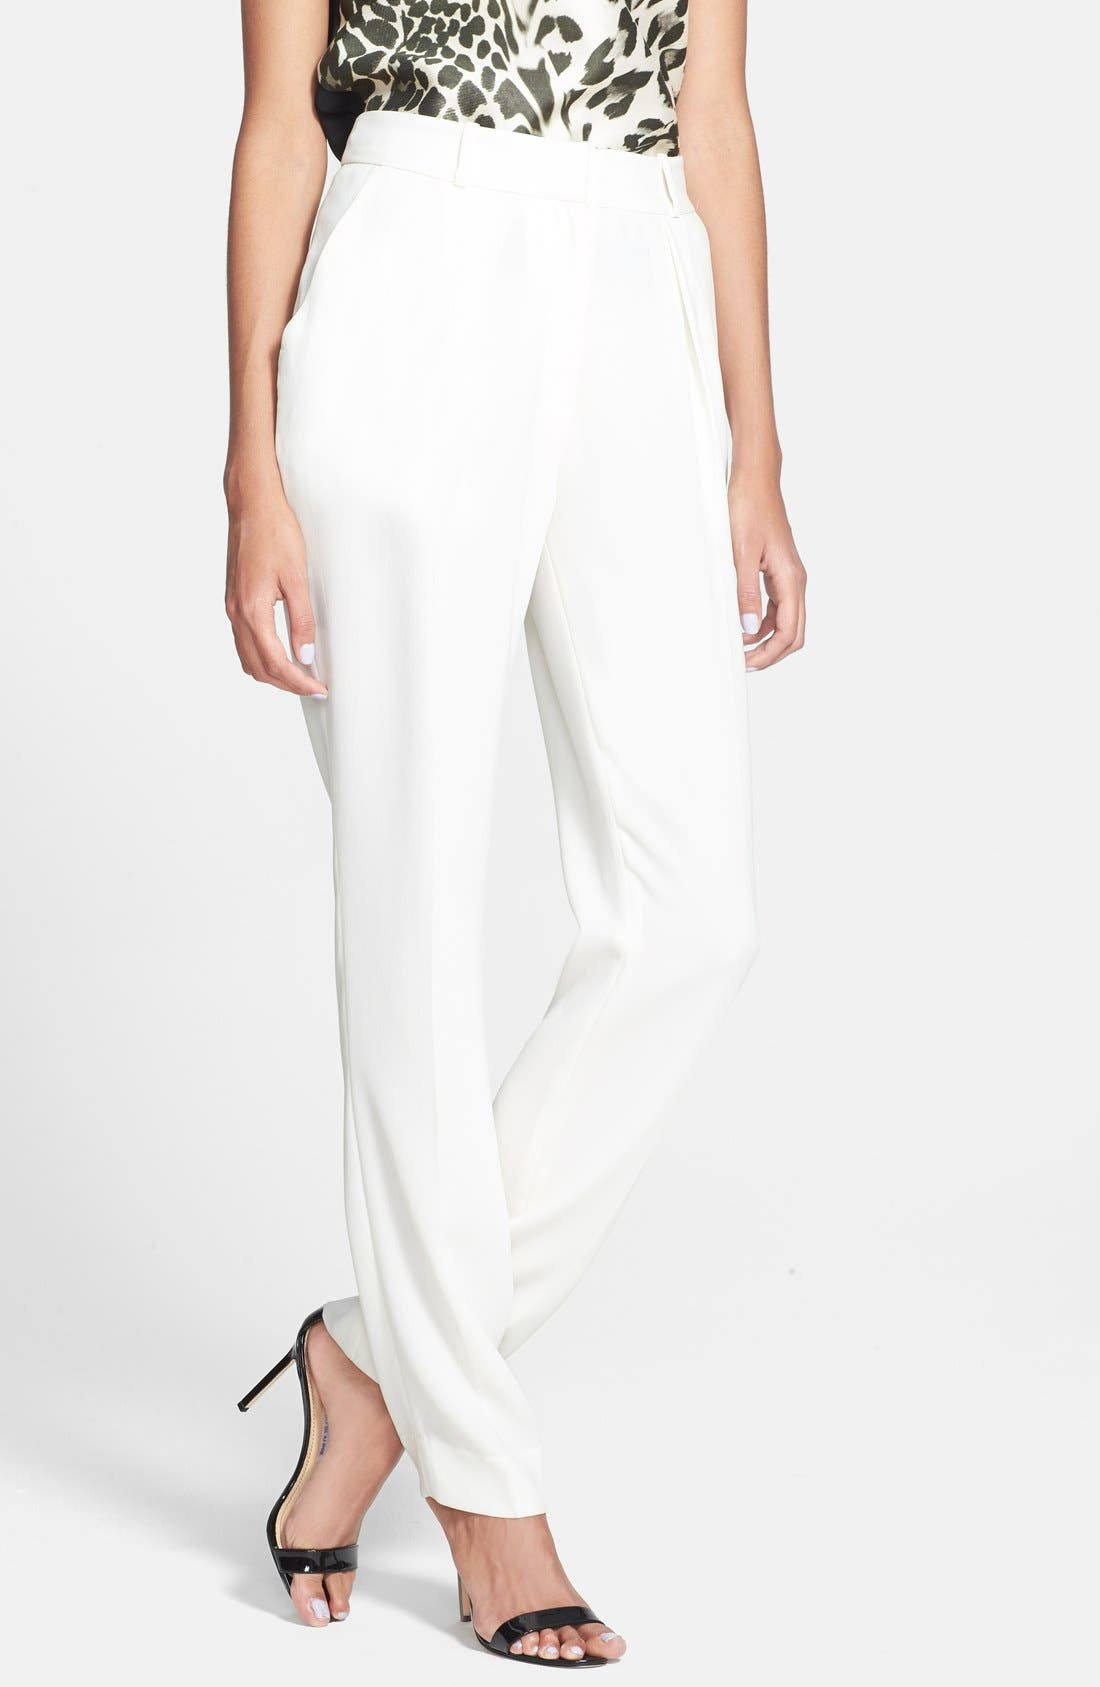 Alternate Image 1 Selected - Diane von Furstenberg 'Dani' Crepe Pants